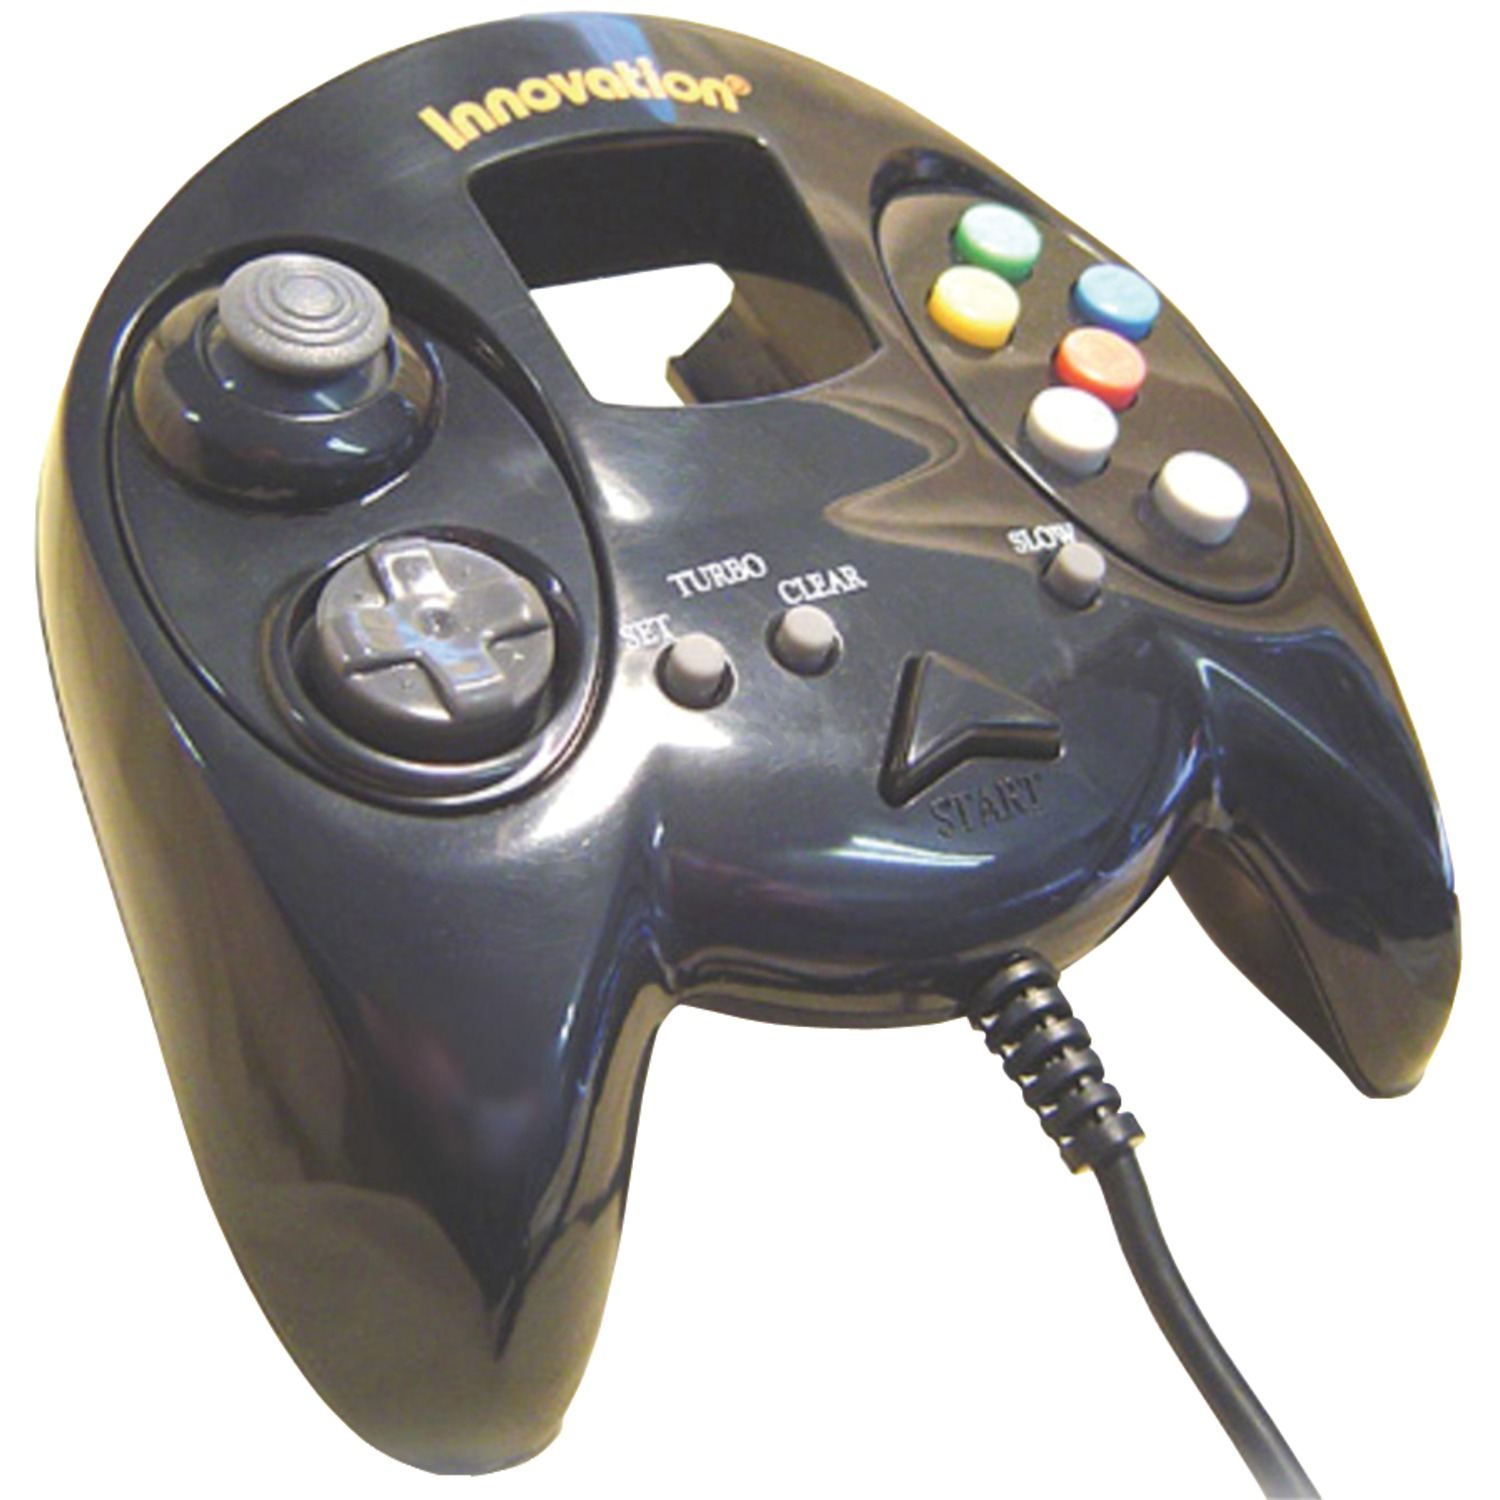 Innovation 738012003886 Sega Dreamcast Controller